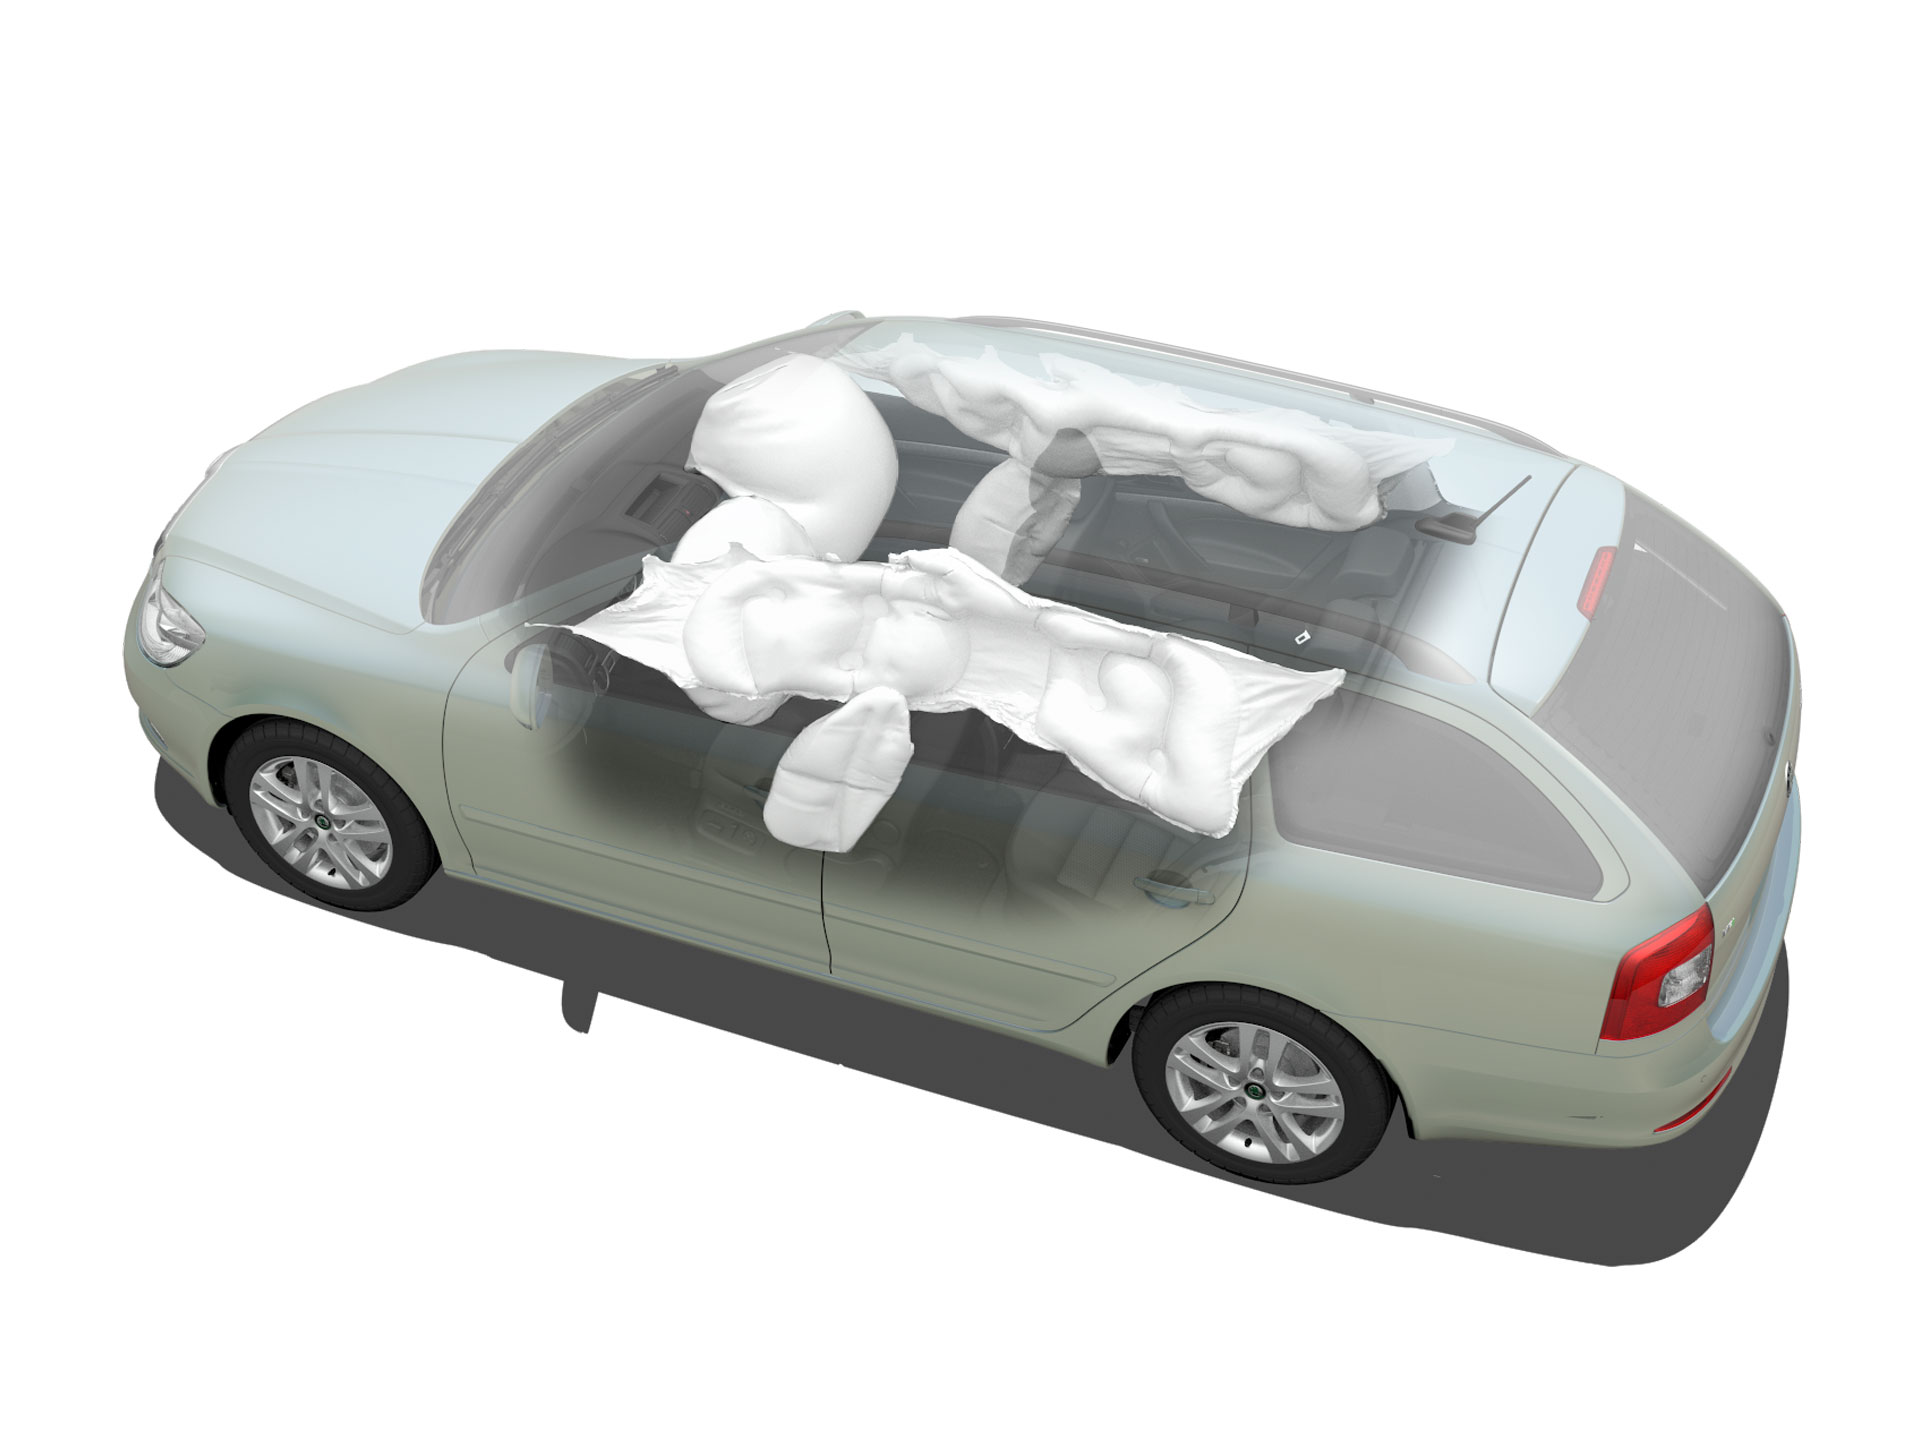 ŠKODA Octavia Safety